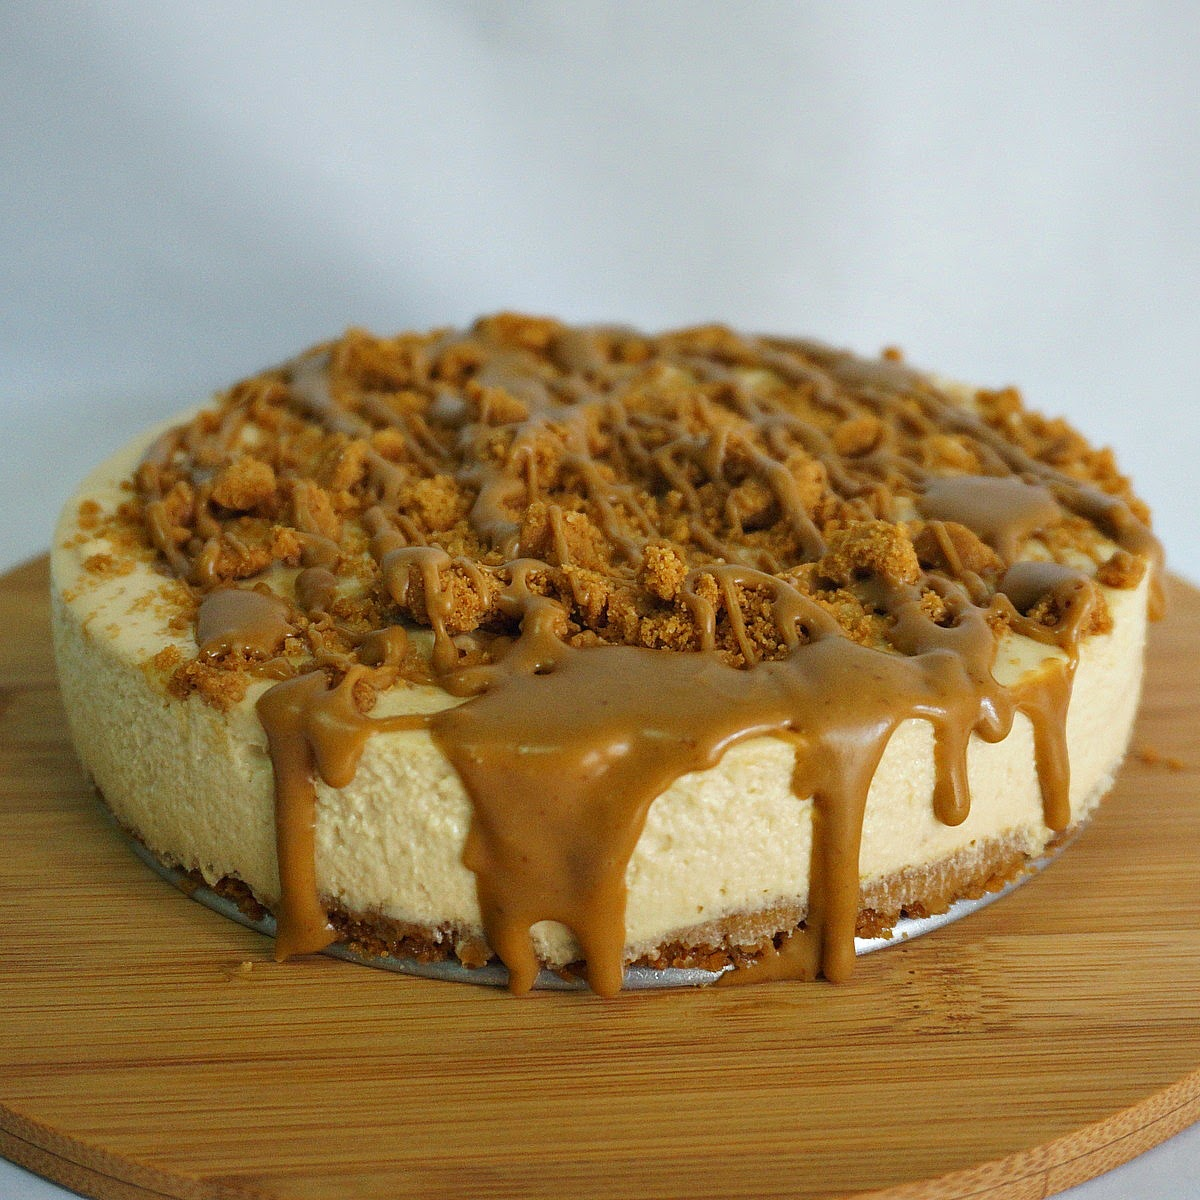 Cheese Cake Speculoos Coulis Caramel Aux Beurre Sal Ef Bf Bd